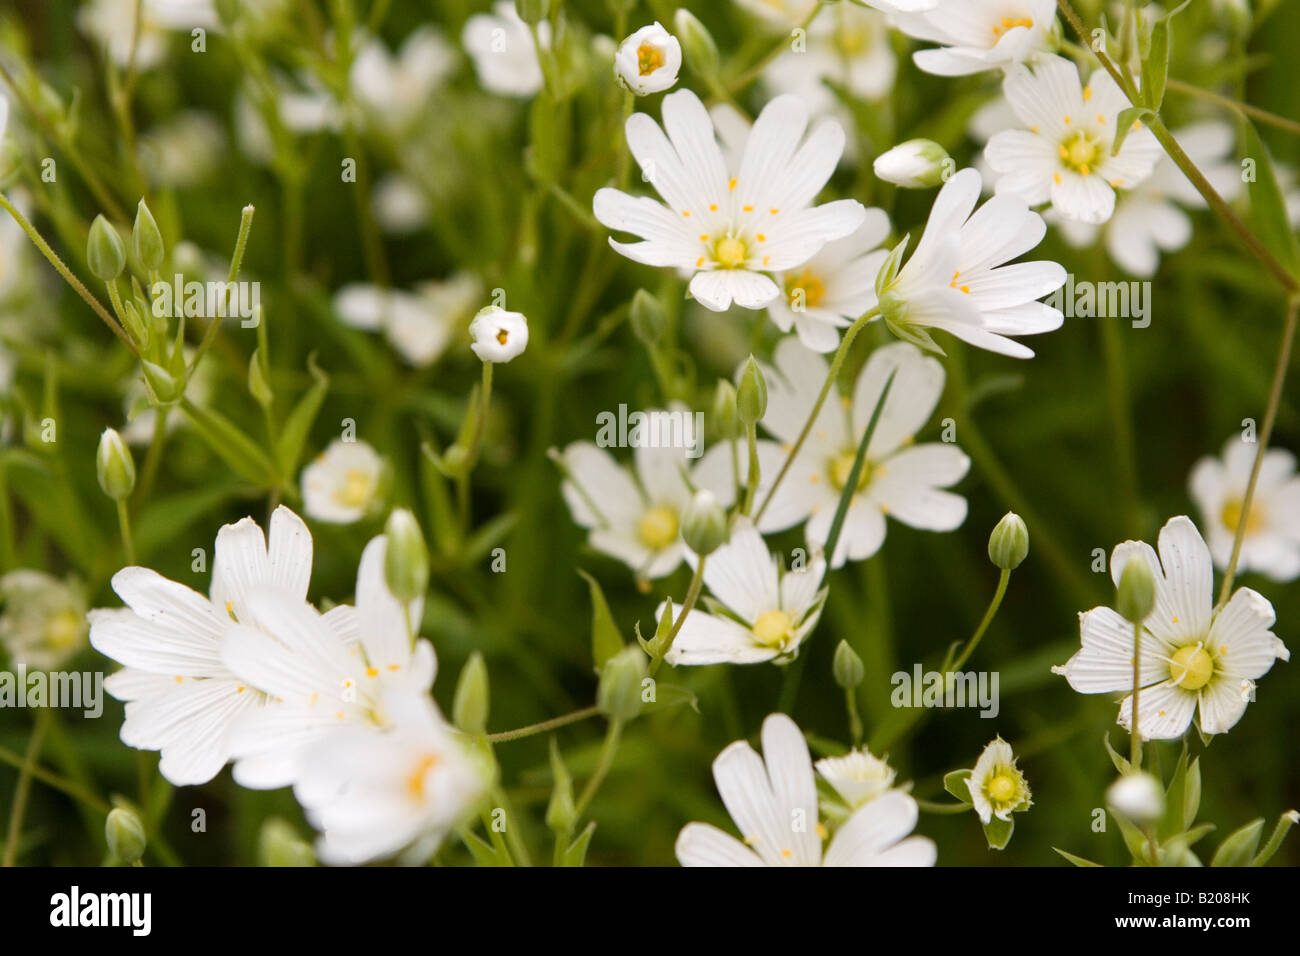 White Daisy Like Flowers Thriving In North East England Stock Photo